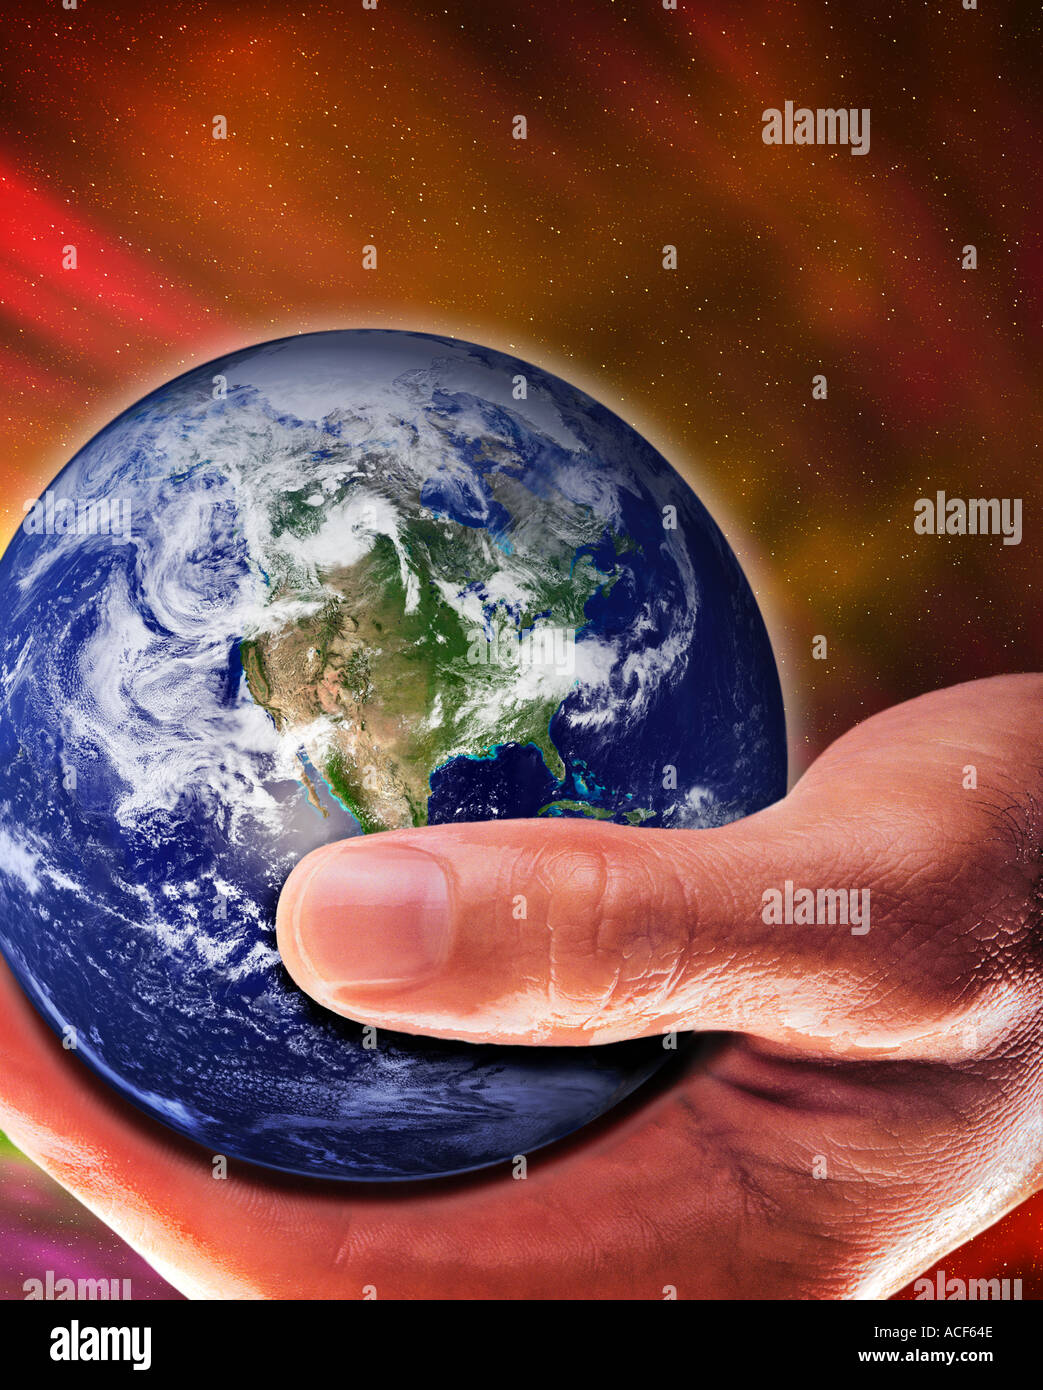 A special effect shot of a hand holding the Earth in space - Stock Image